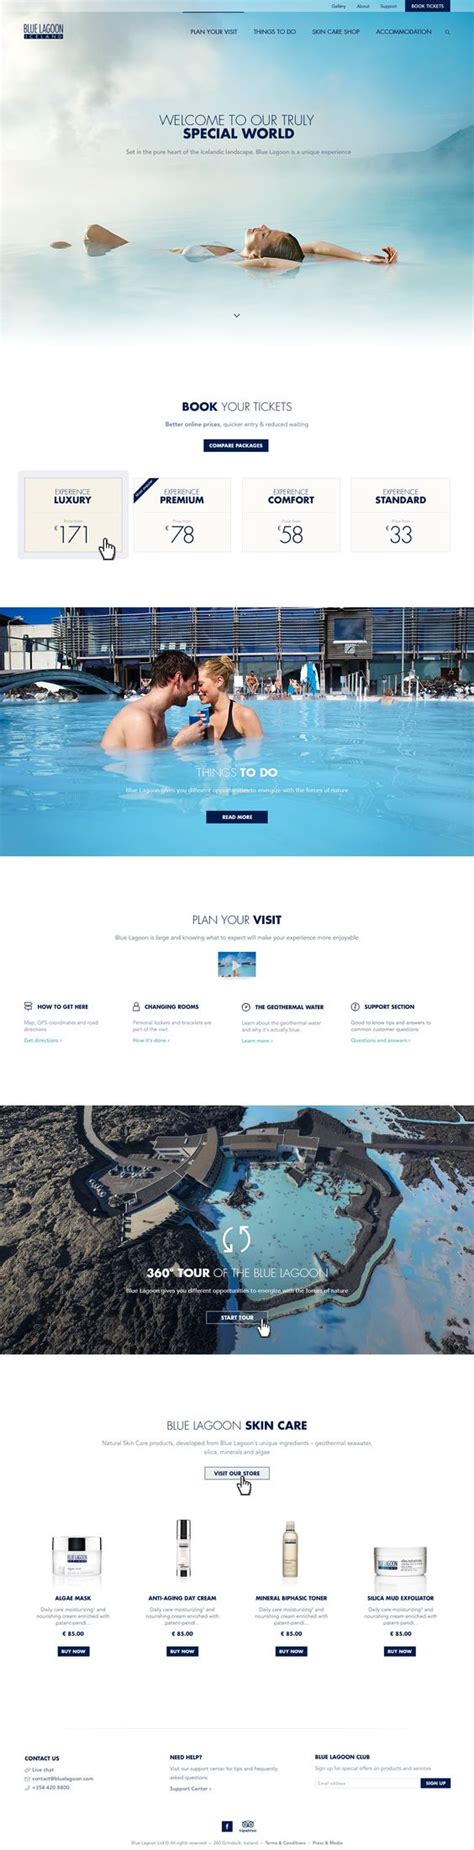 website color schemes 2017 best web color schemes of 2017 tim b design